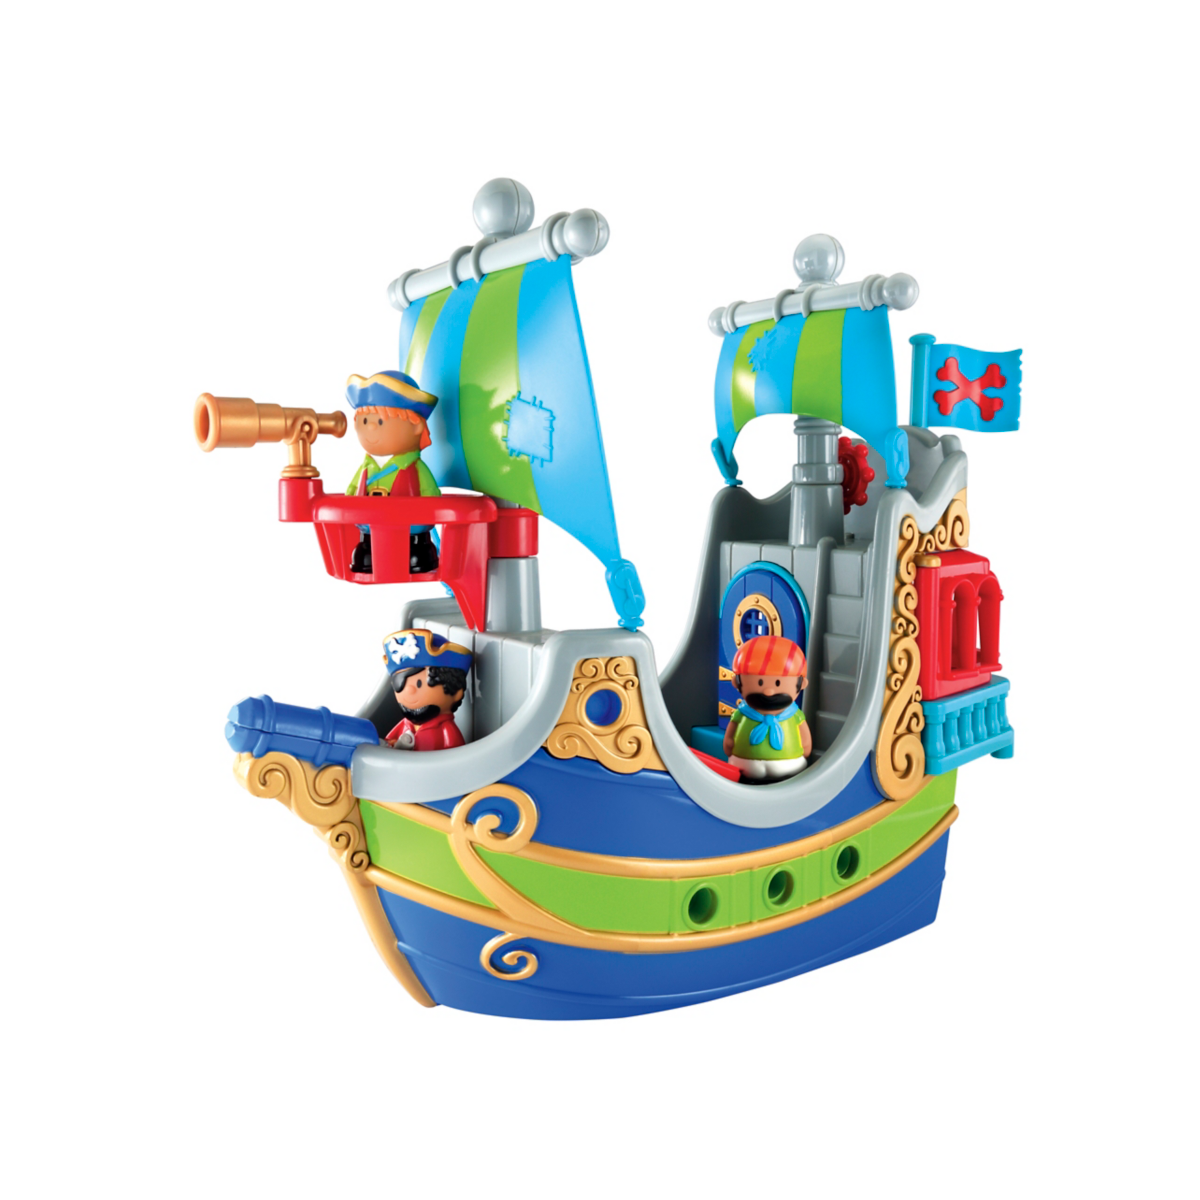 Happyland Pirate Ship from Early Learning Center